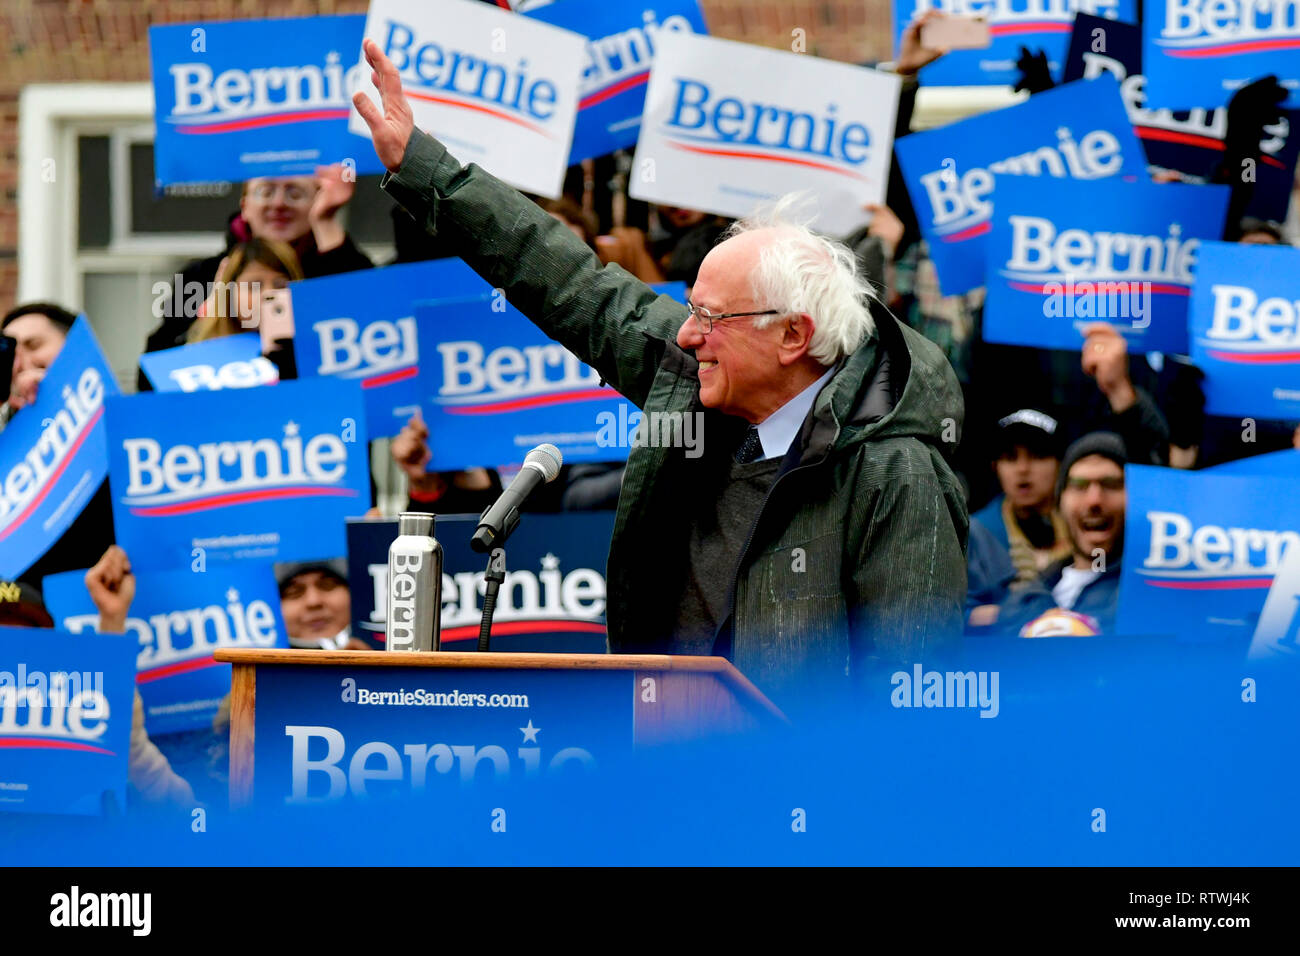 New York, NY, USA. 2nd March, 2019. Bernie Sanders, Independent US Senator from Vermont is greeted by supporters as he arrives to kicks-off his campaign for the 2020 U.S. Presidential Elections on a Democratic ticket at a rally at Brooklyn College, in Brooklyn, NY on March 2, 2019. Credit: OOgImages/Alamy Live News - Stock Image